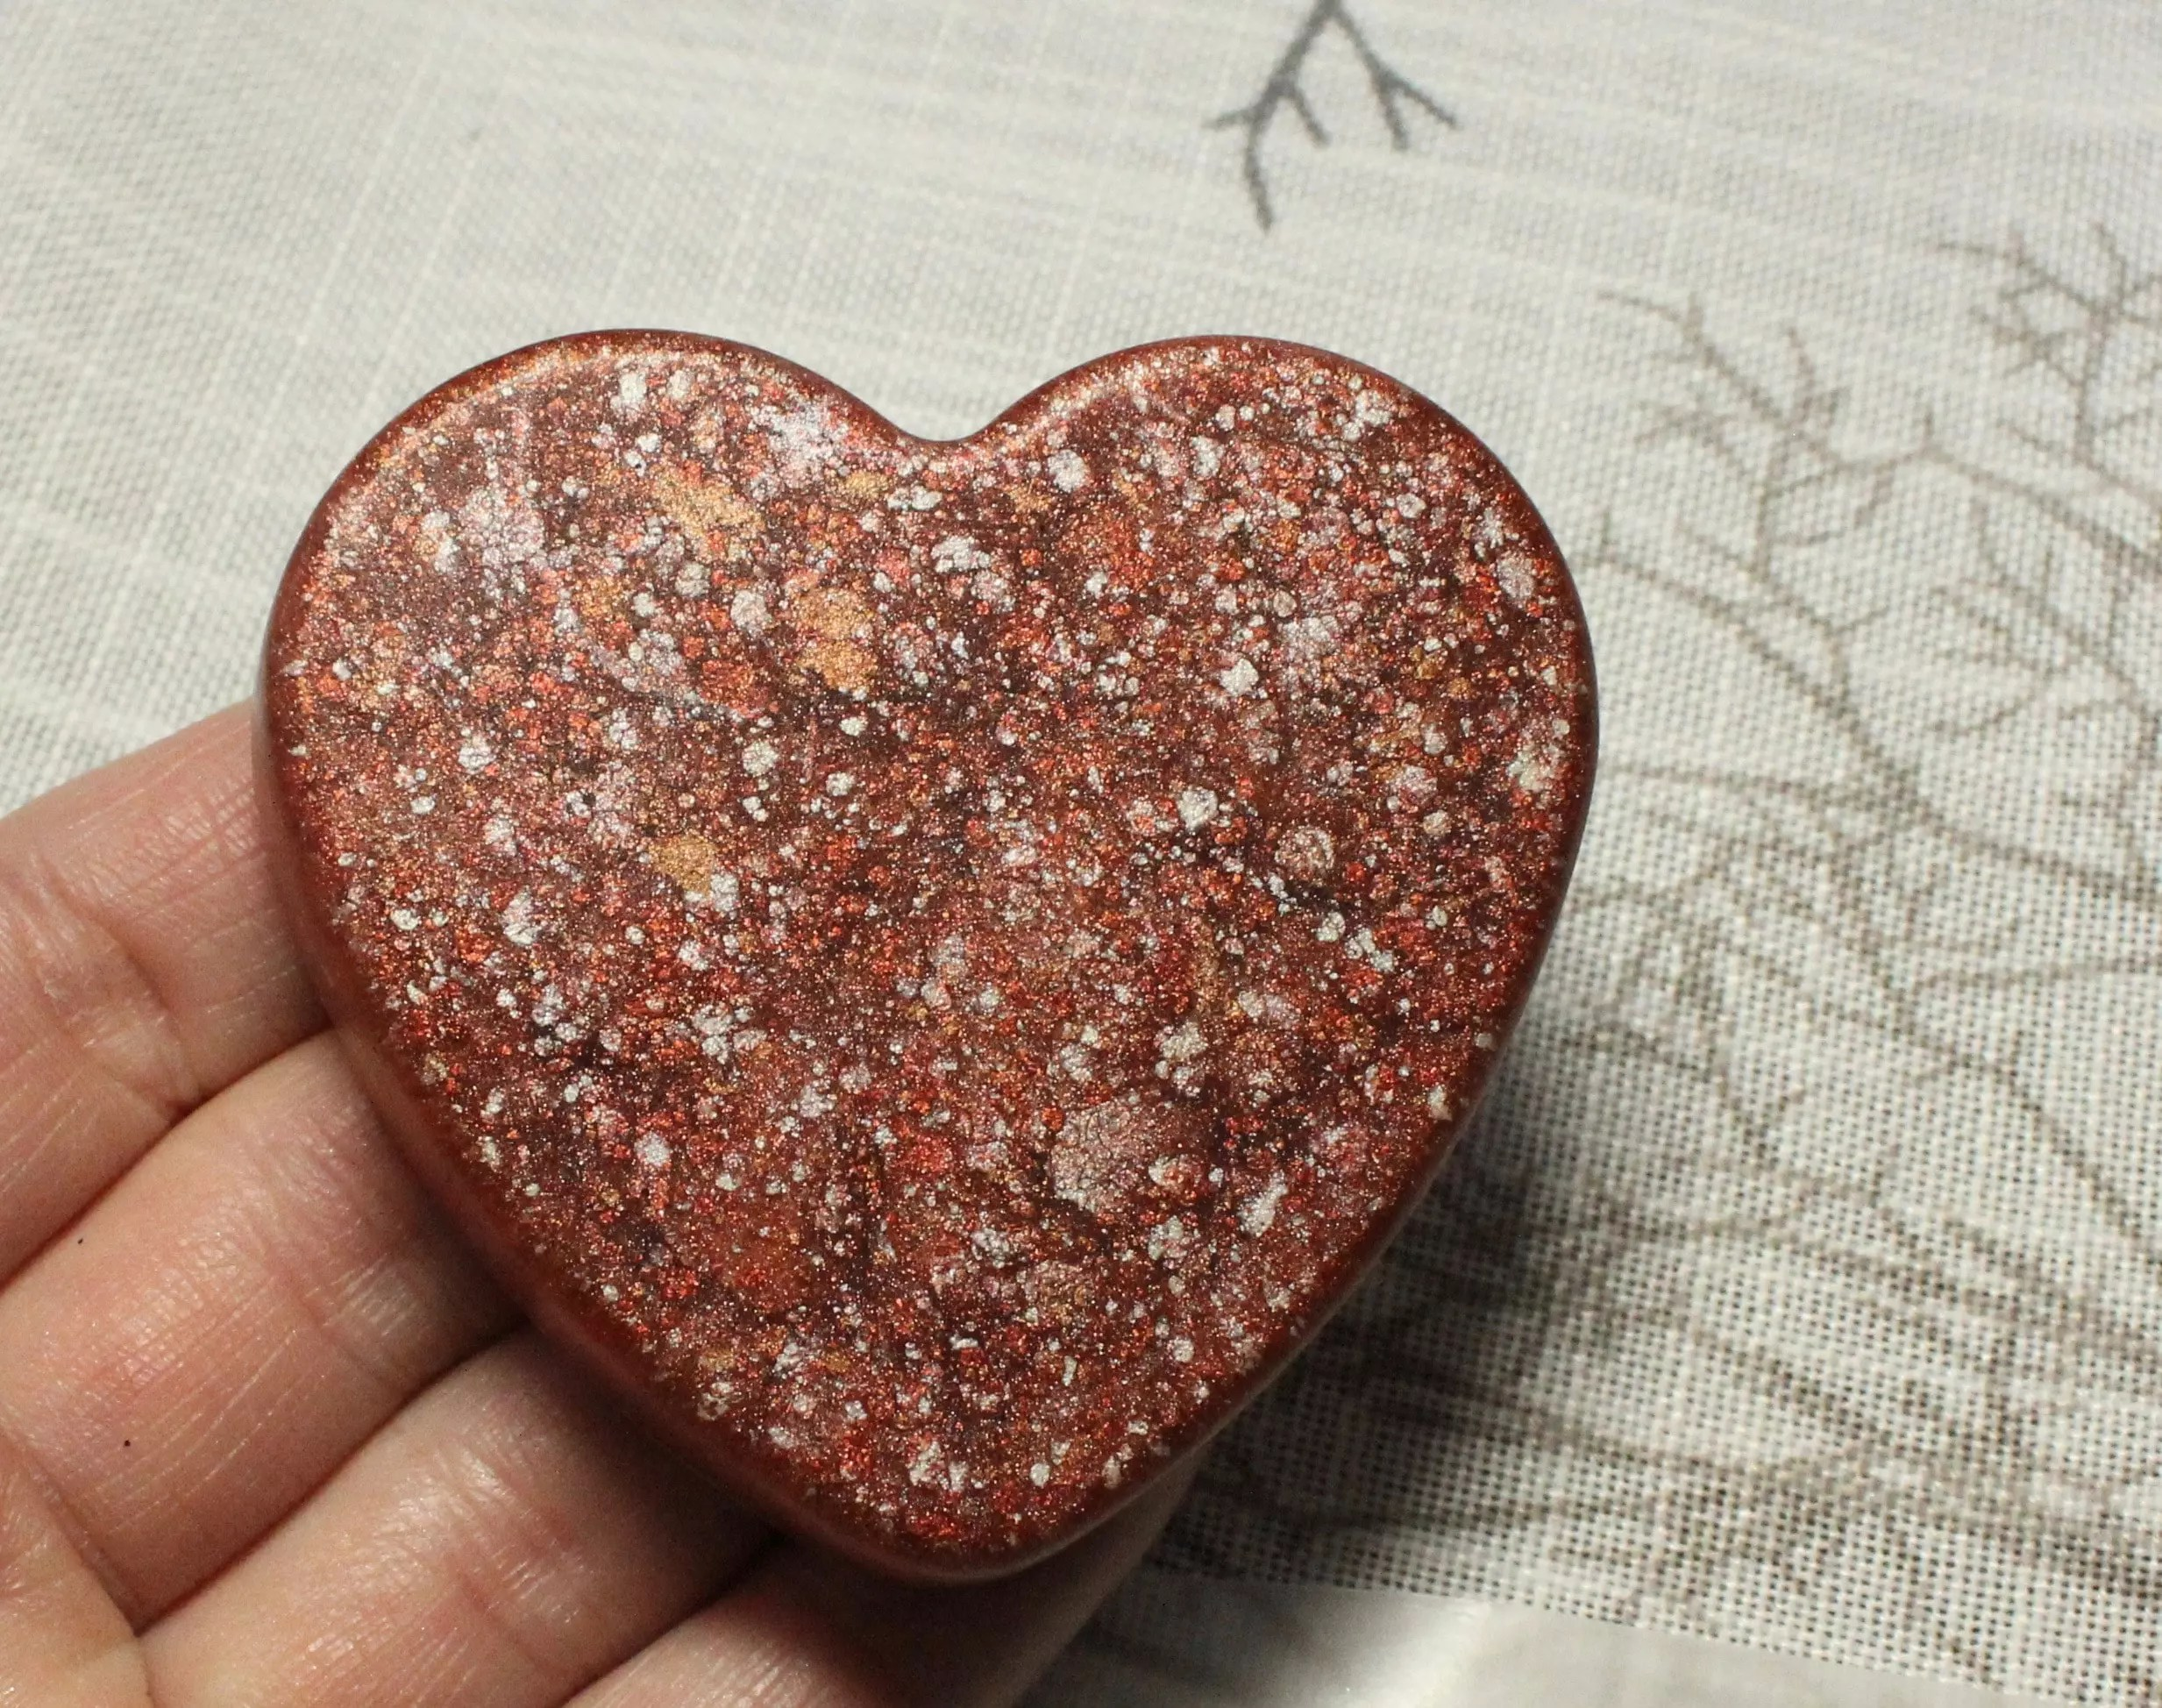 Pearl Ex Powdered Pigments bronze and gold heart